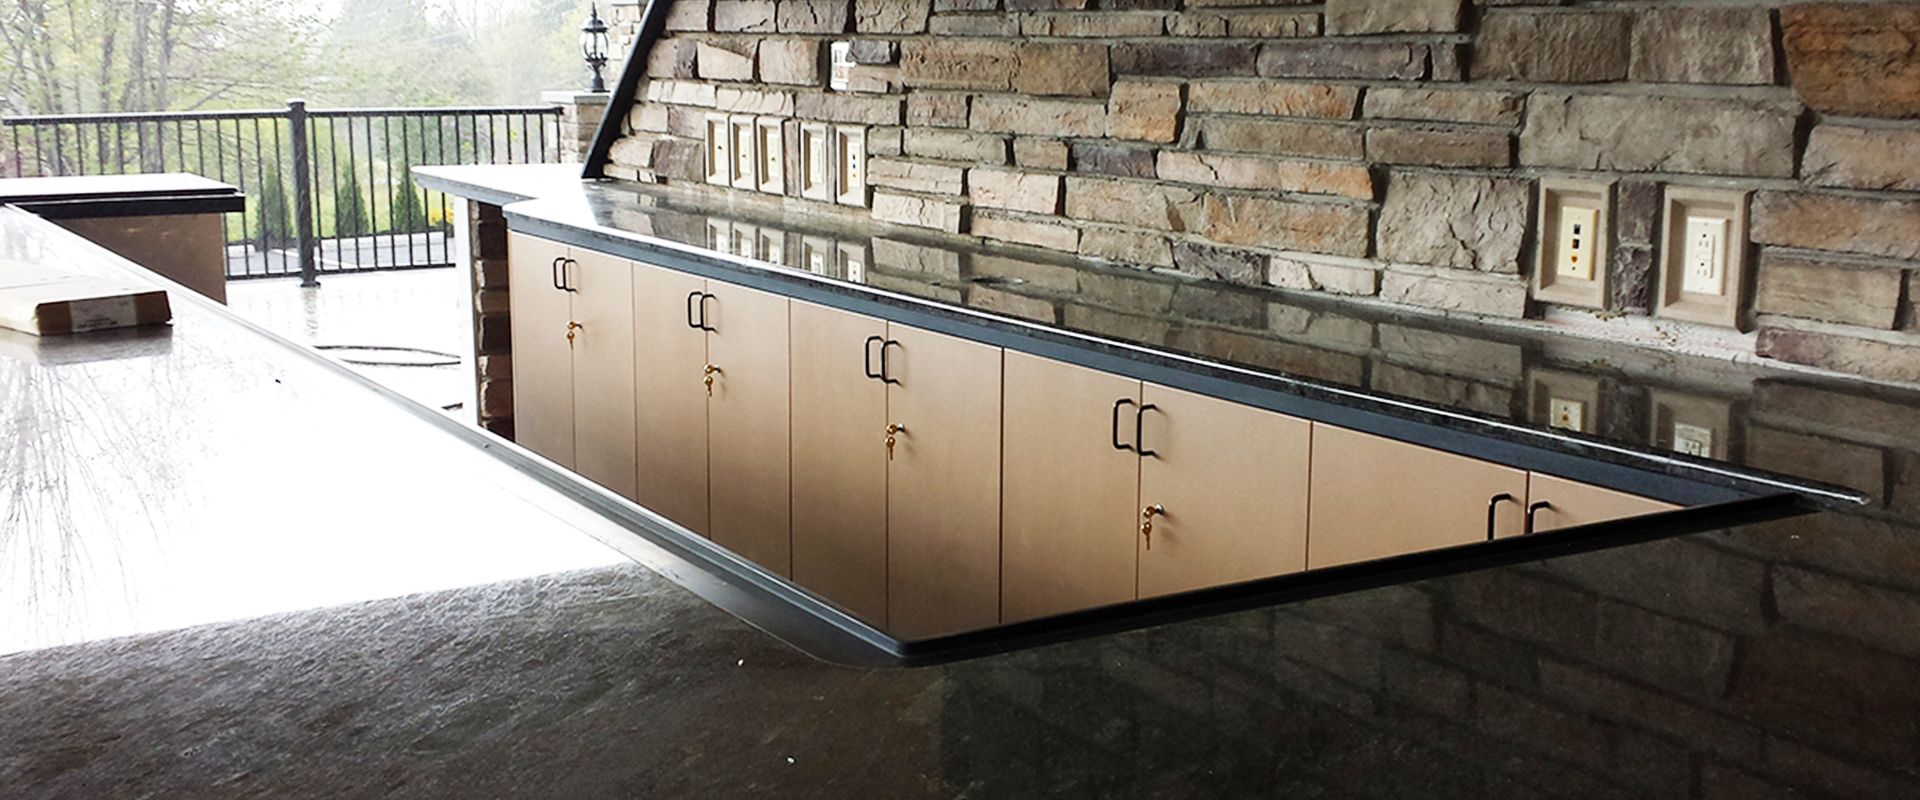 Open Air - Simple Cabinet Door Locked cabinets Twisted Elements mn